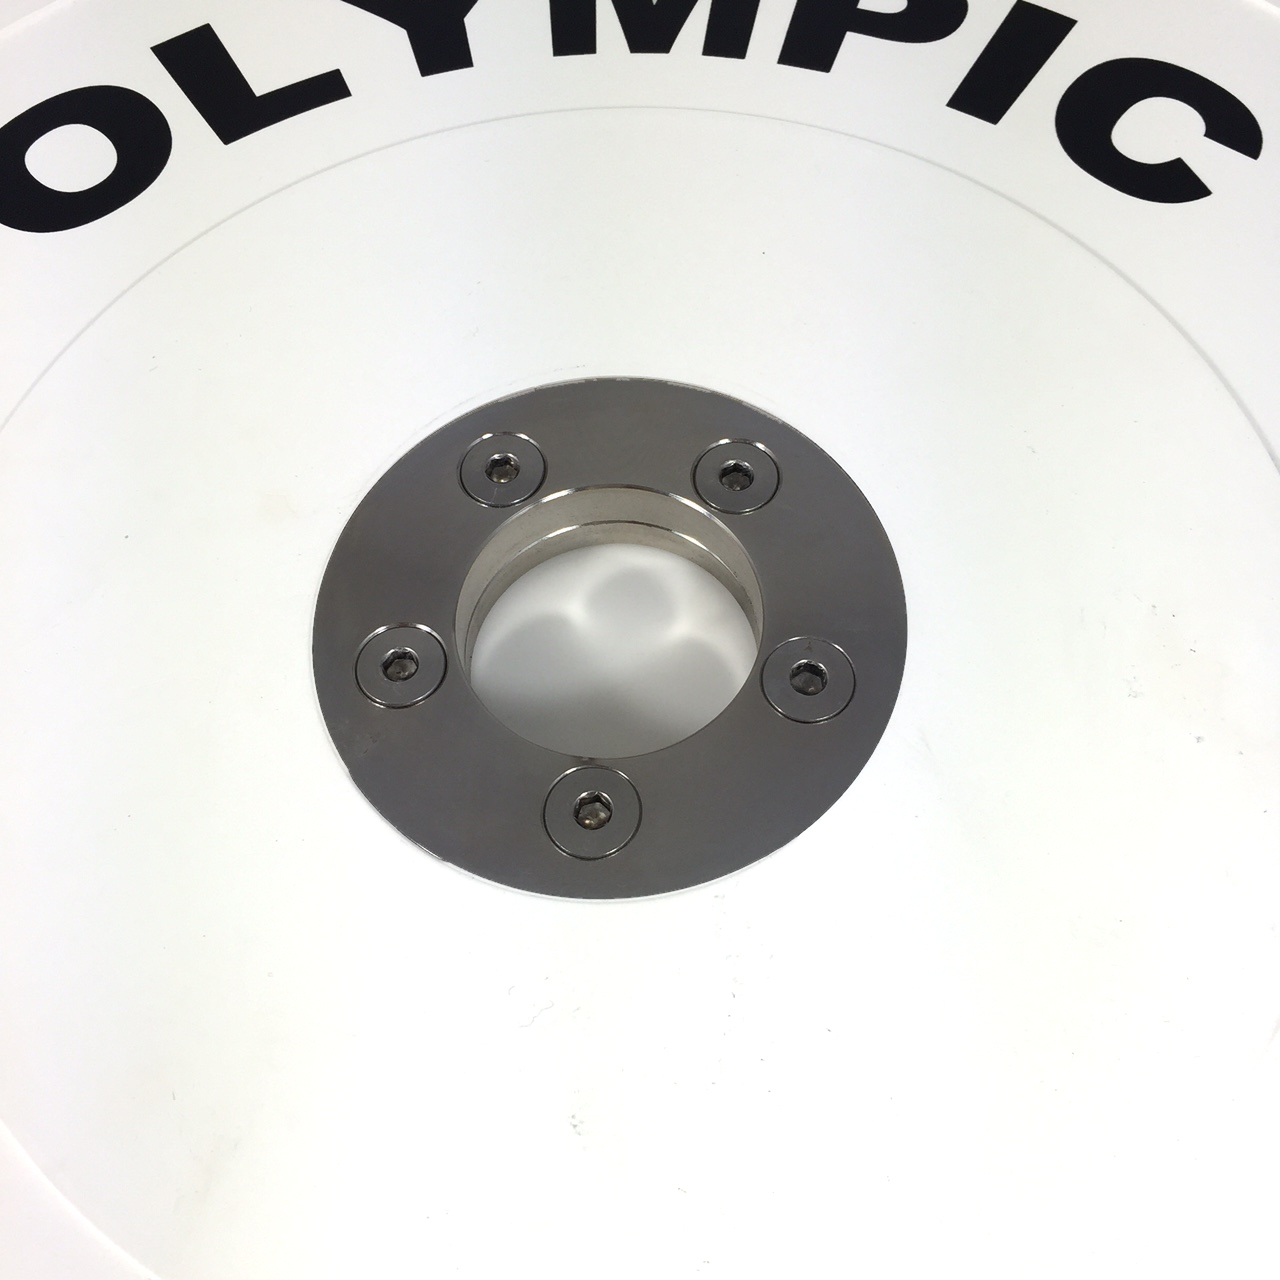 5kg-olympic-bumpers